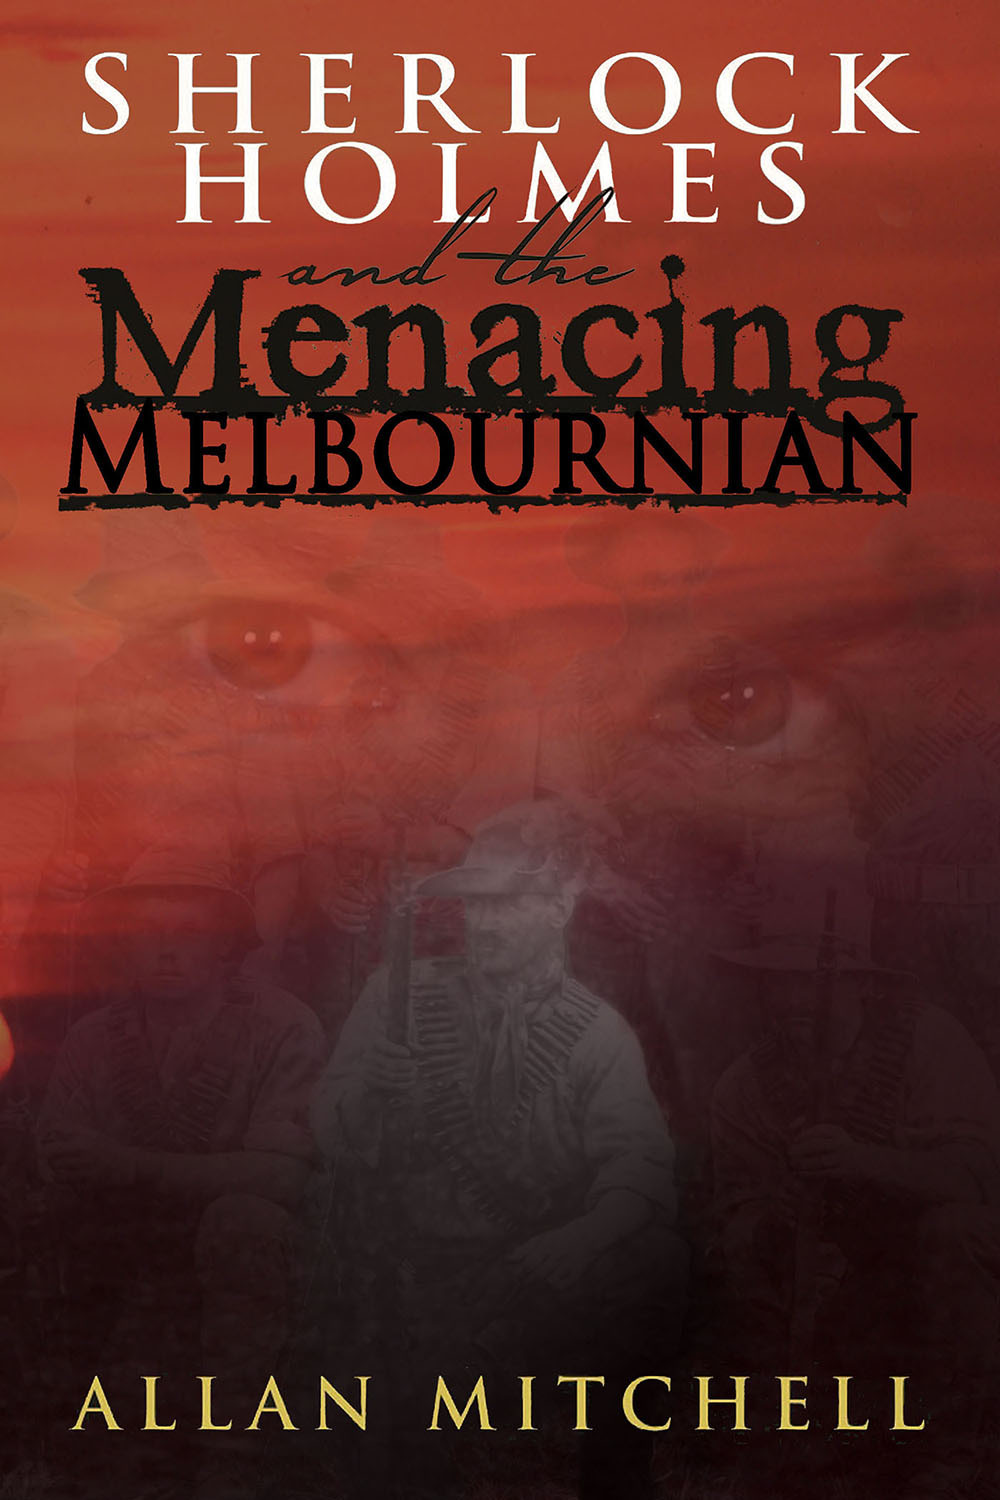 Mitchell, Allan - Sherlock Holmes and the Menacing Melbournian, ebook